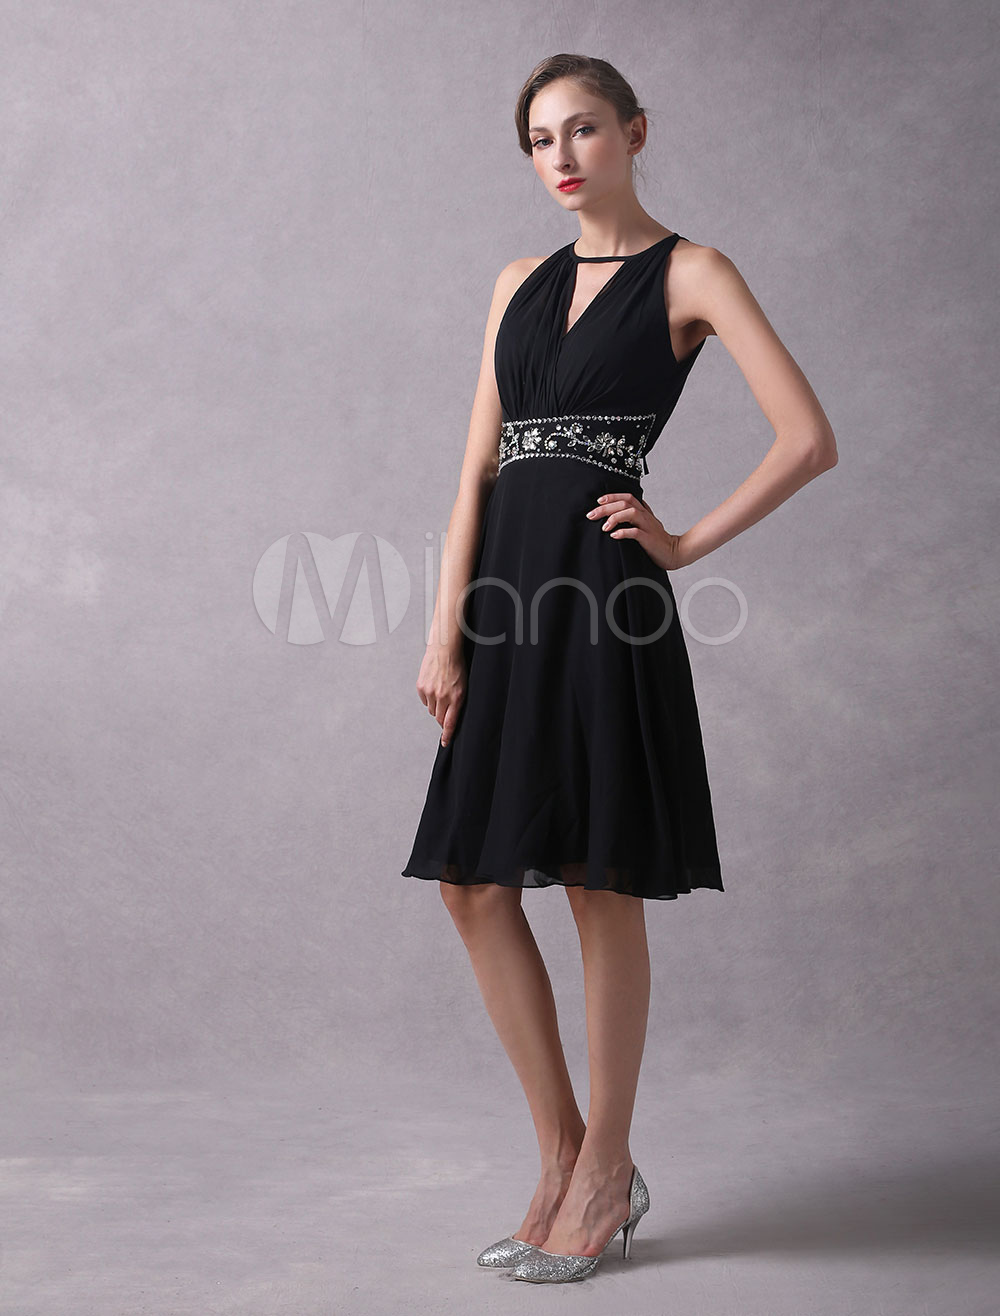 Little Black Dresses Chiffon Short Cocktail Dress Halter Ribbon